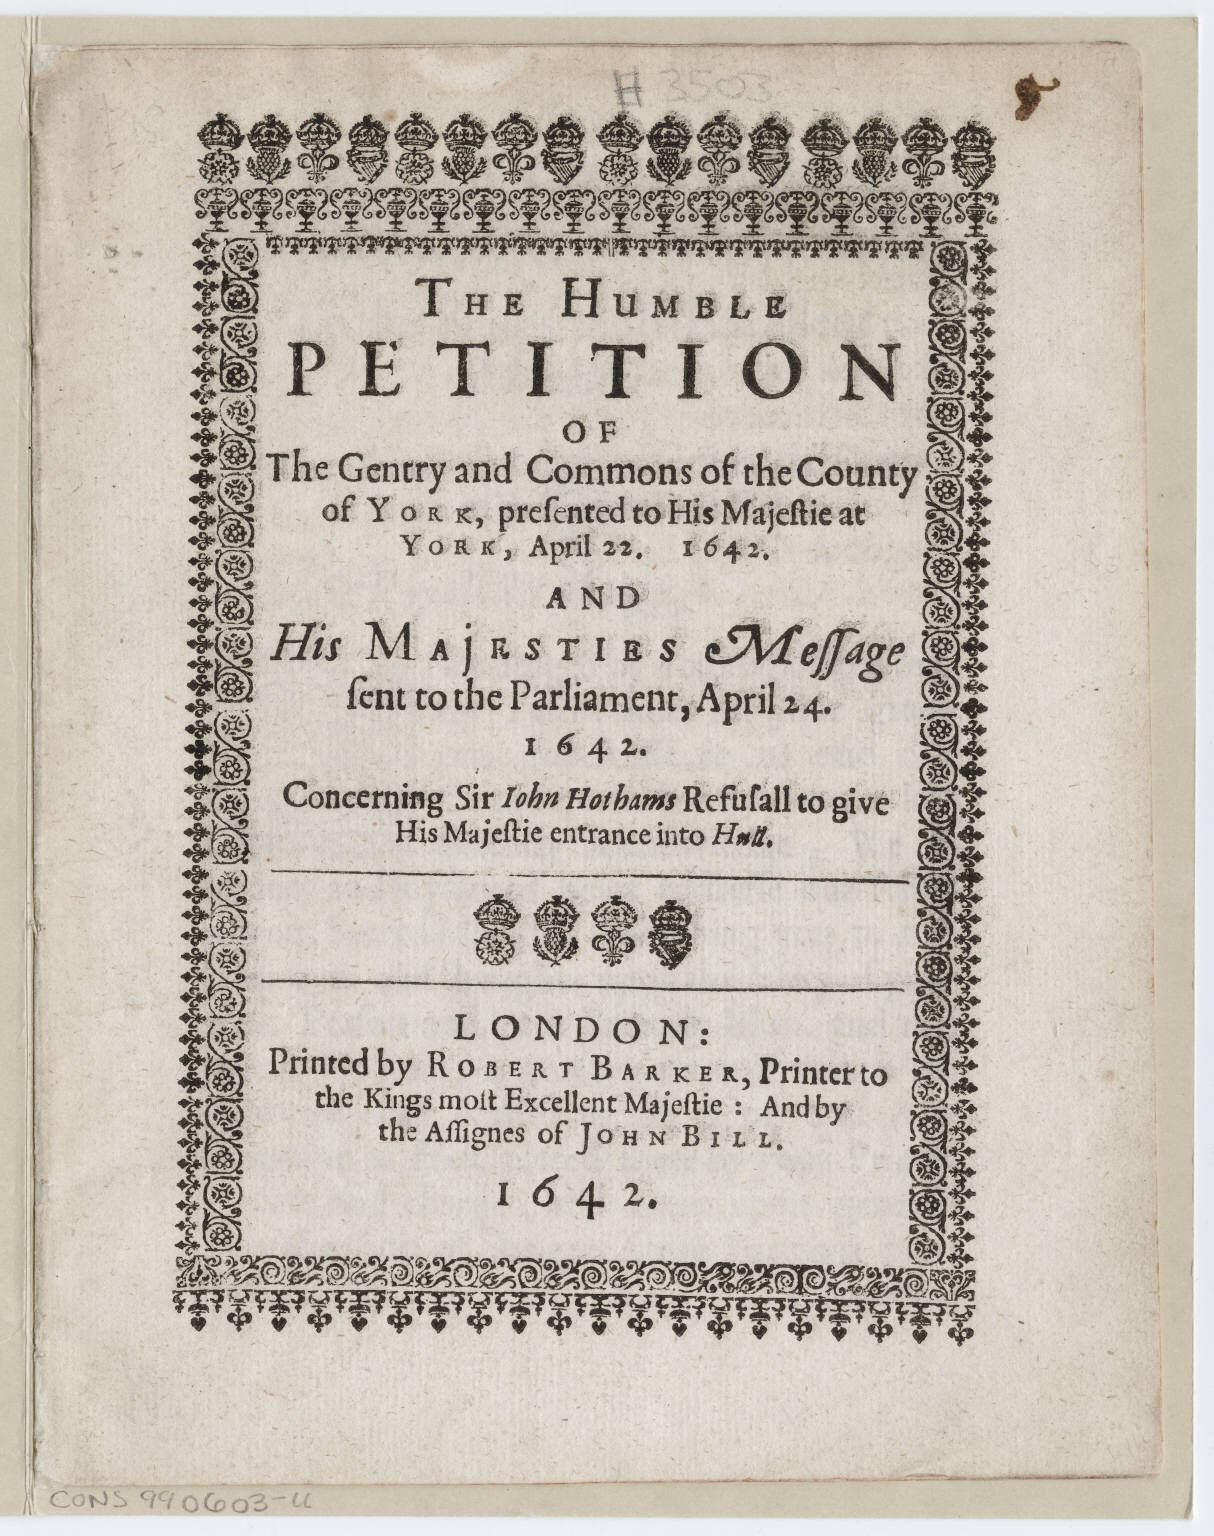 external image The_Humble_Petition_of_The_Gentry_and_Commons_of_the_County_of_York_1642.jpg